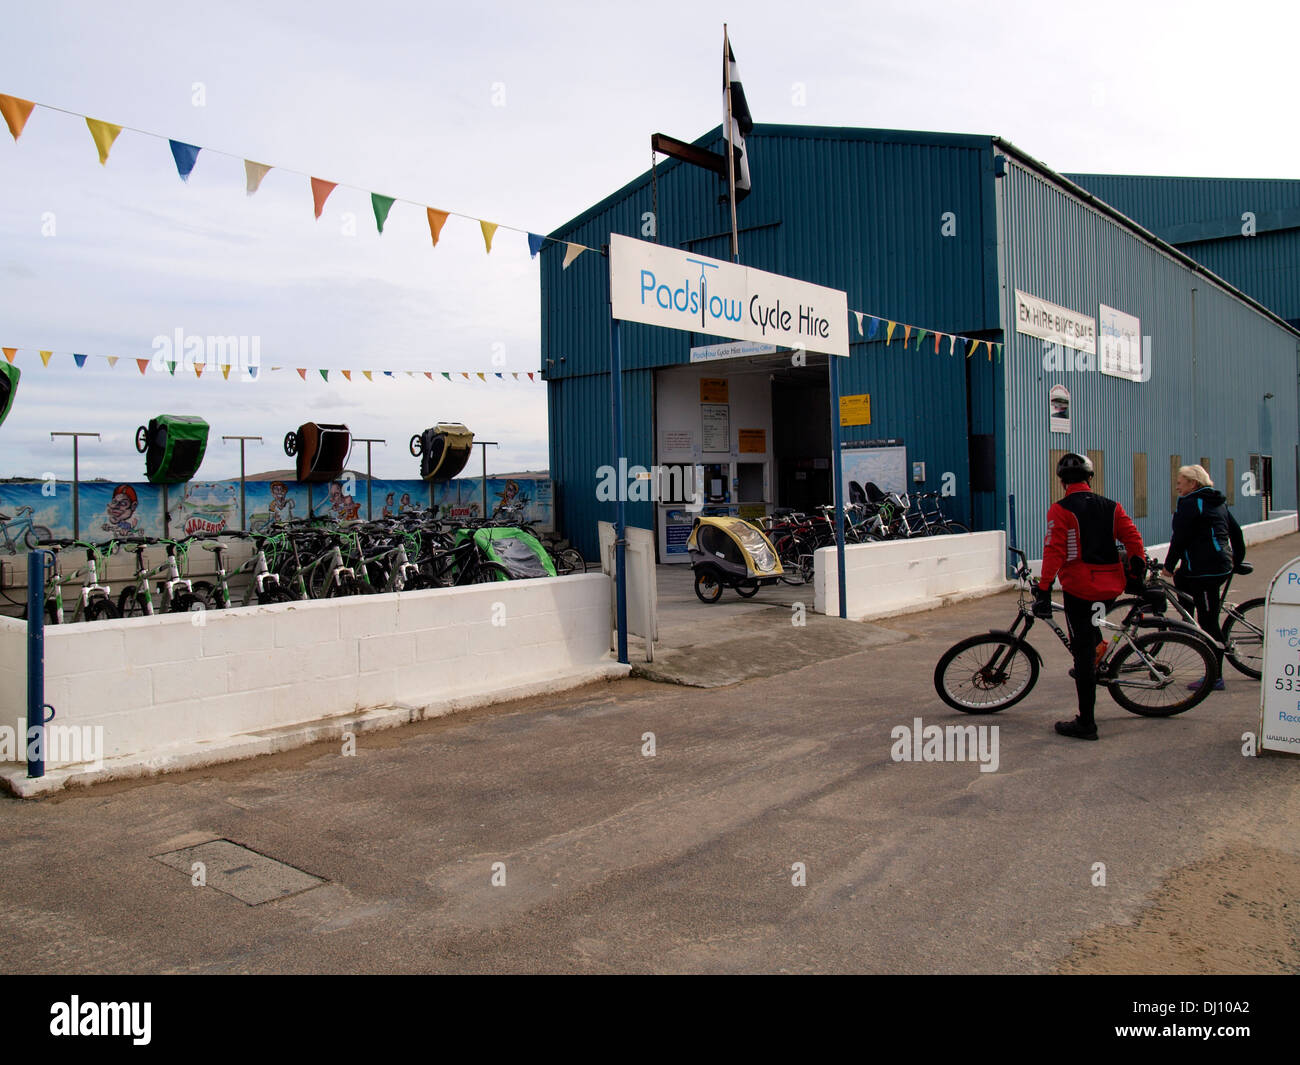 Padstow cycle hire, Cornwall, UK - Stock Image